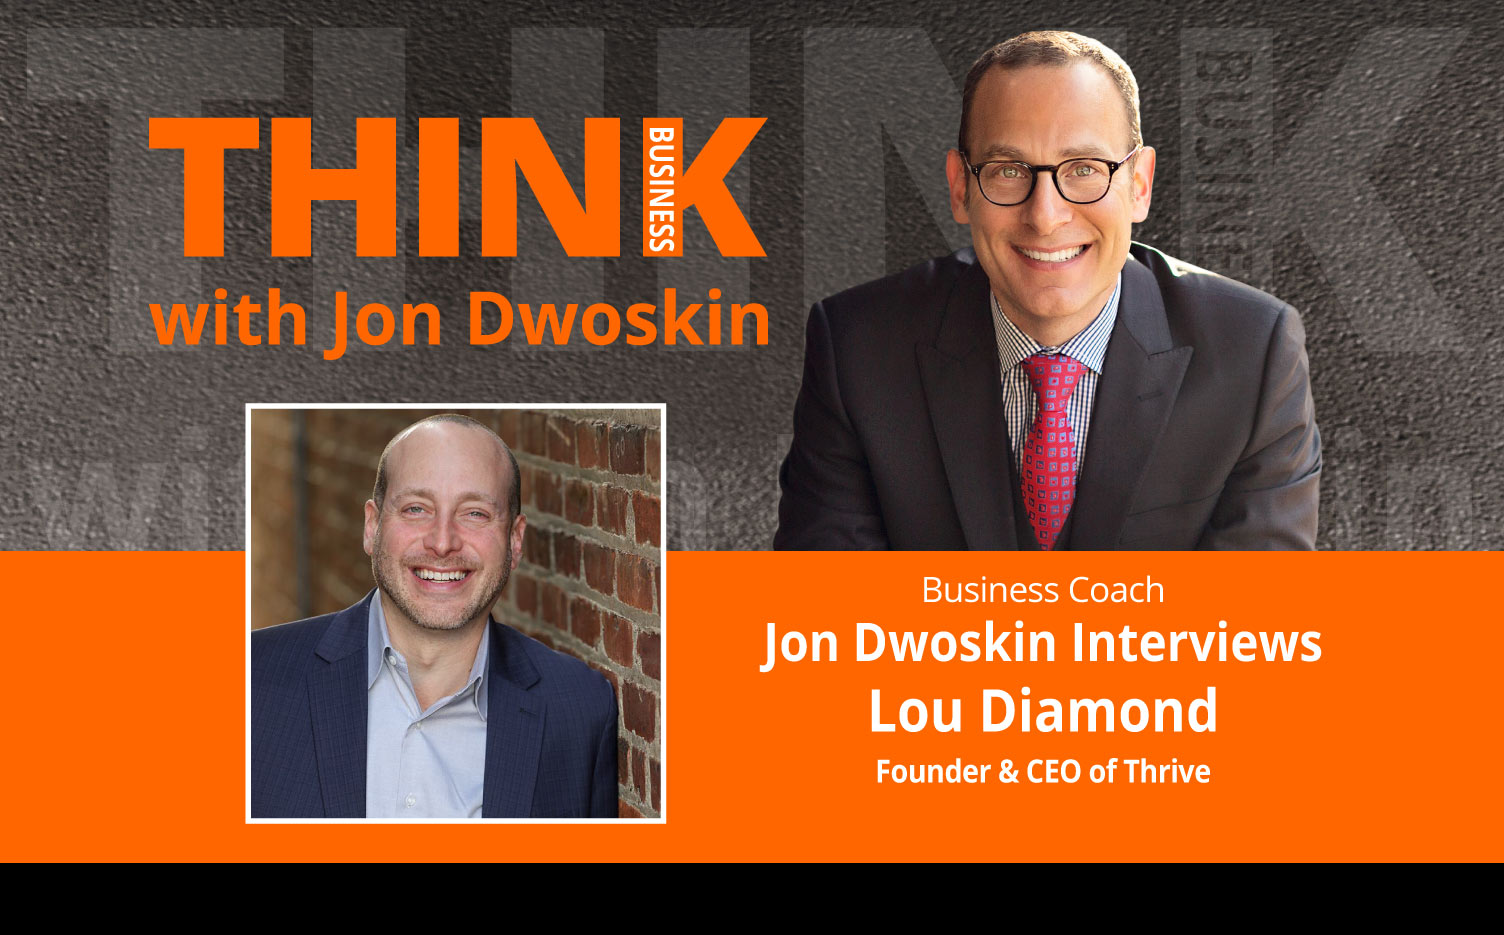 THINK Business Podcast: Jon Dwoskin Interviews Lou Diamond, Founder & CEO of Thrive